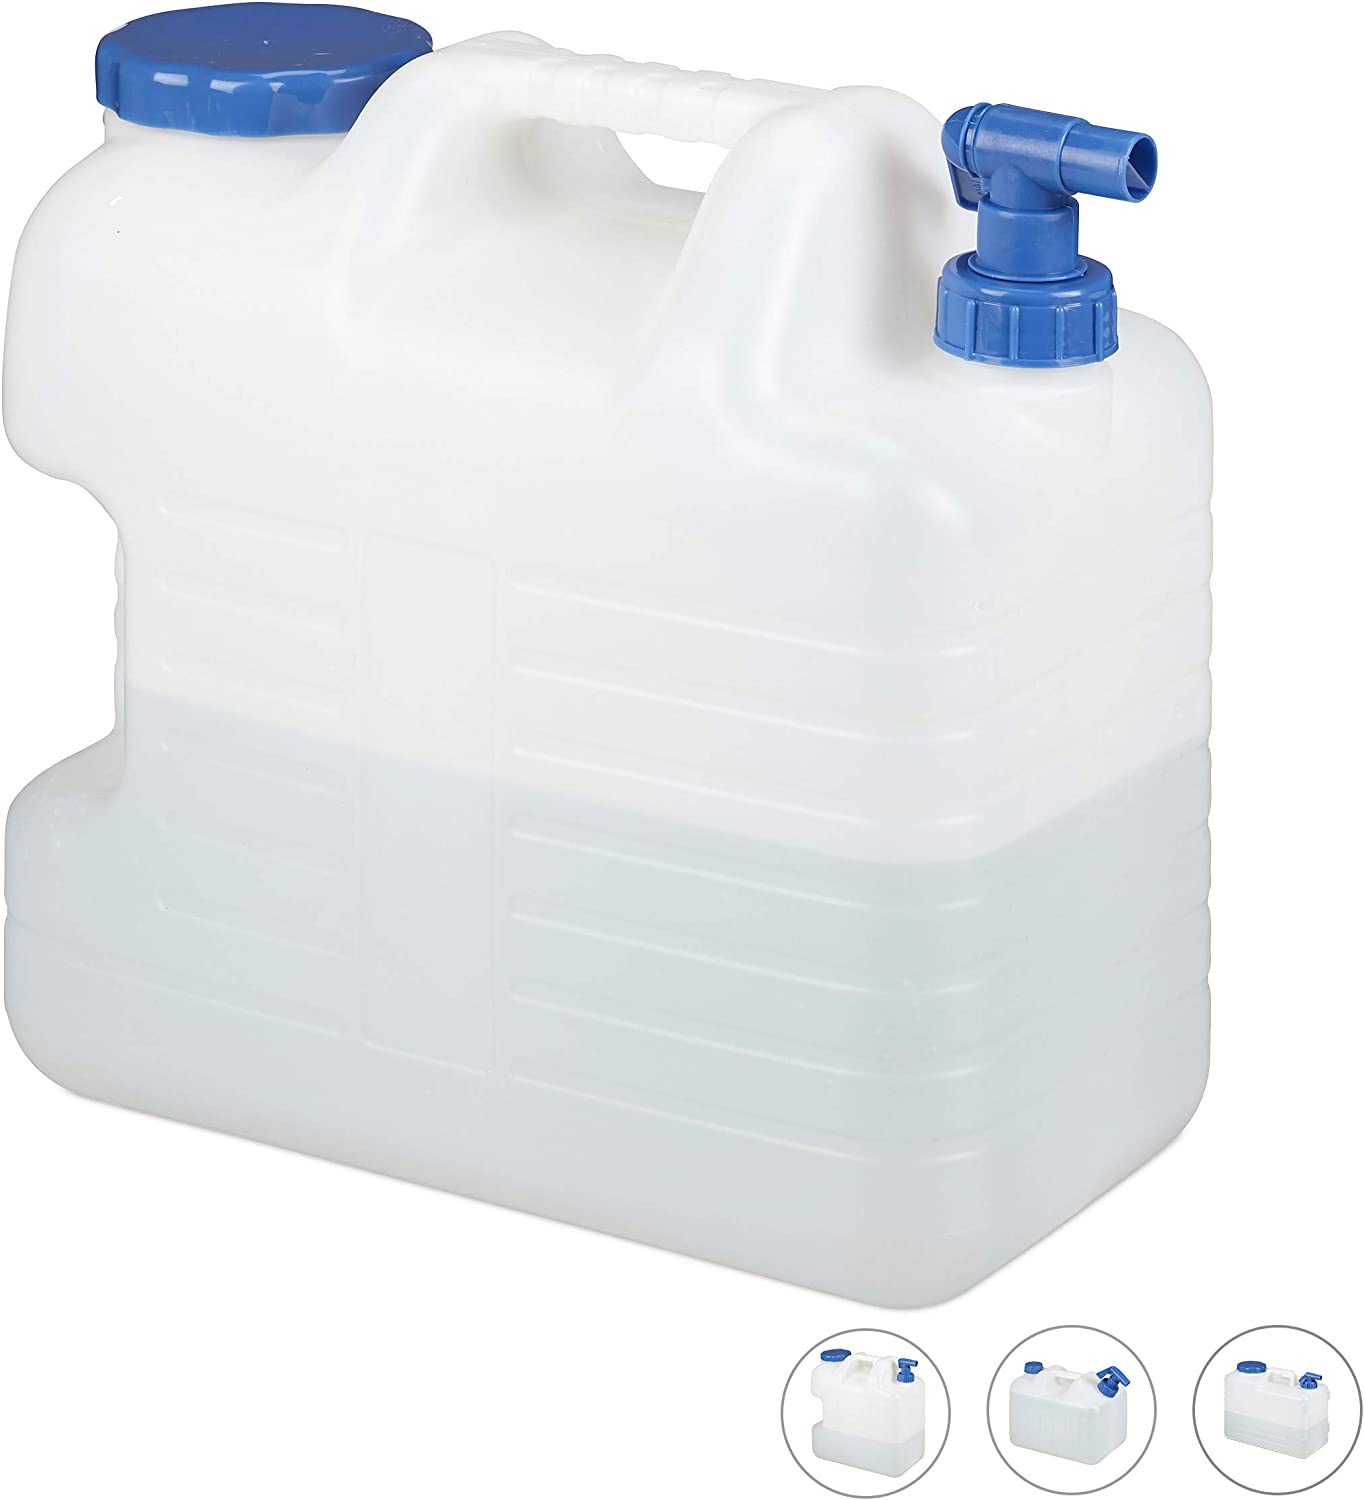 Water storage container 20L Camping Canister Garden Tank Bottle Jerry Can Picnic